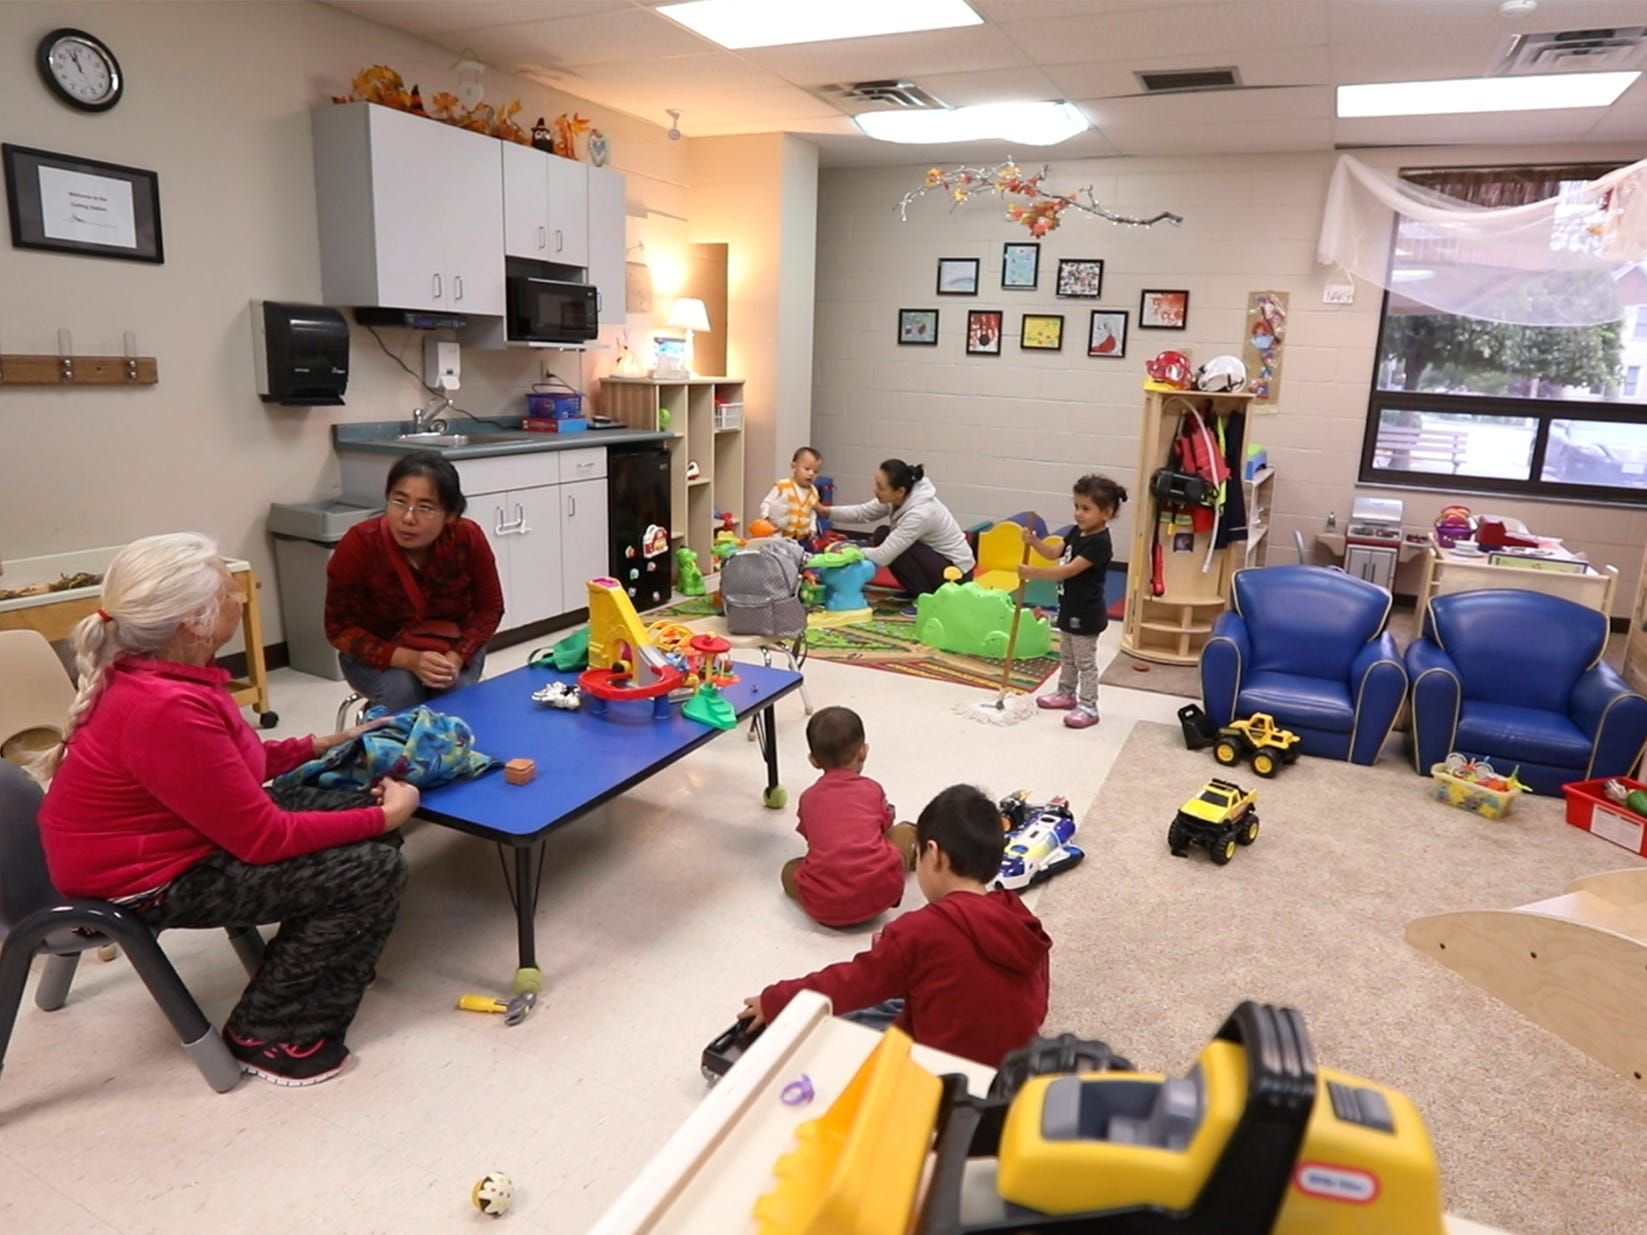 Glengarry EarlyON Child and Family Centre gives a chance for parents and caregivers to connect with each other and receive services if needed.